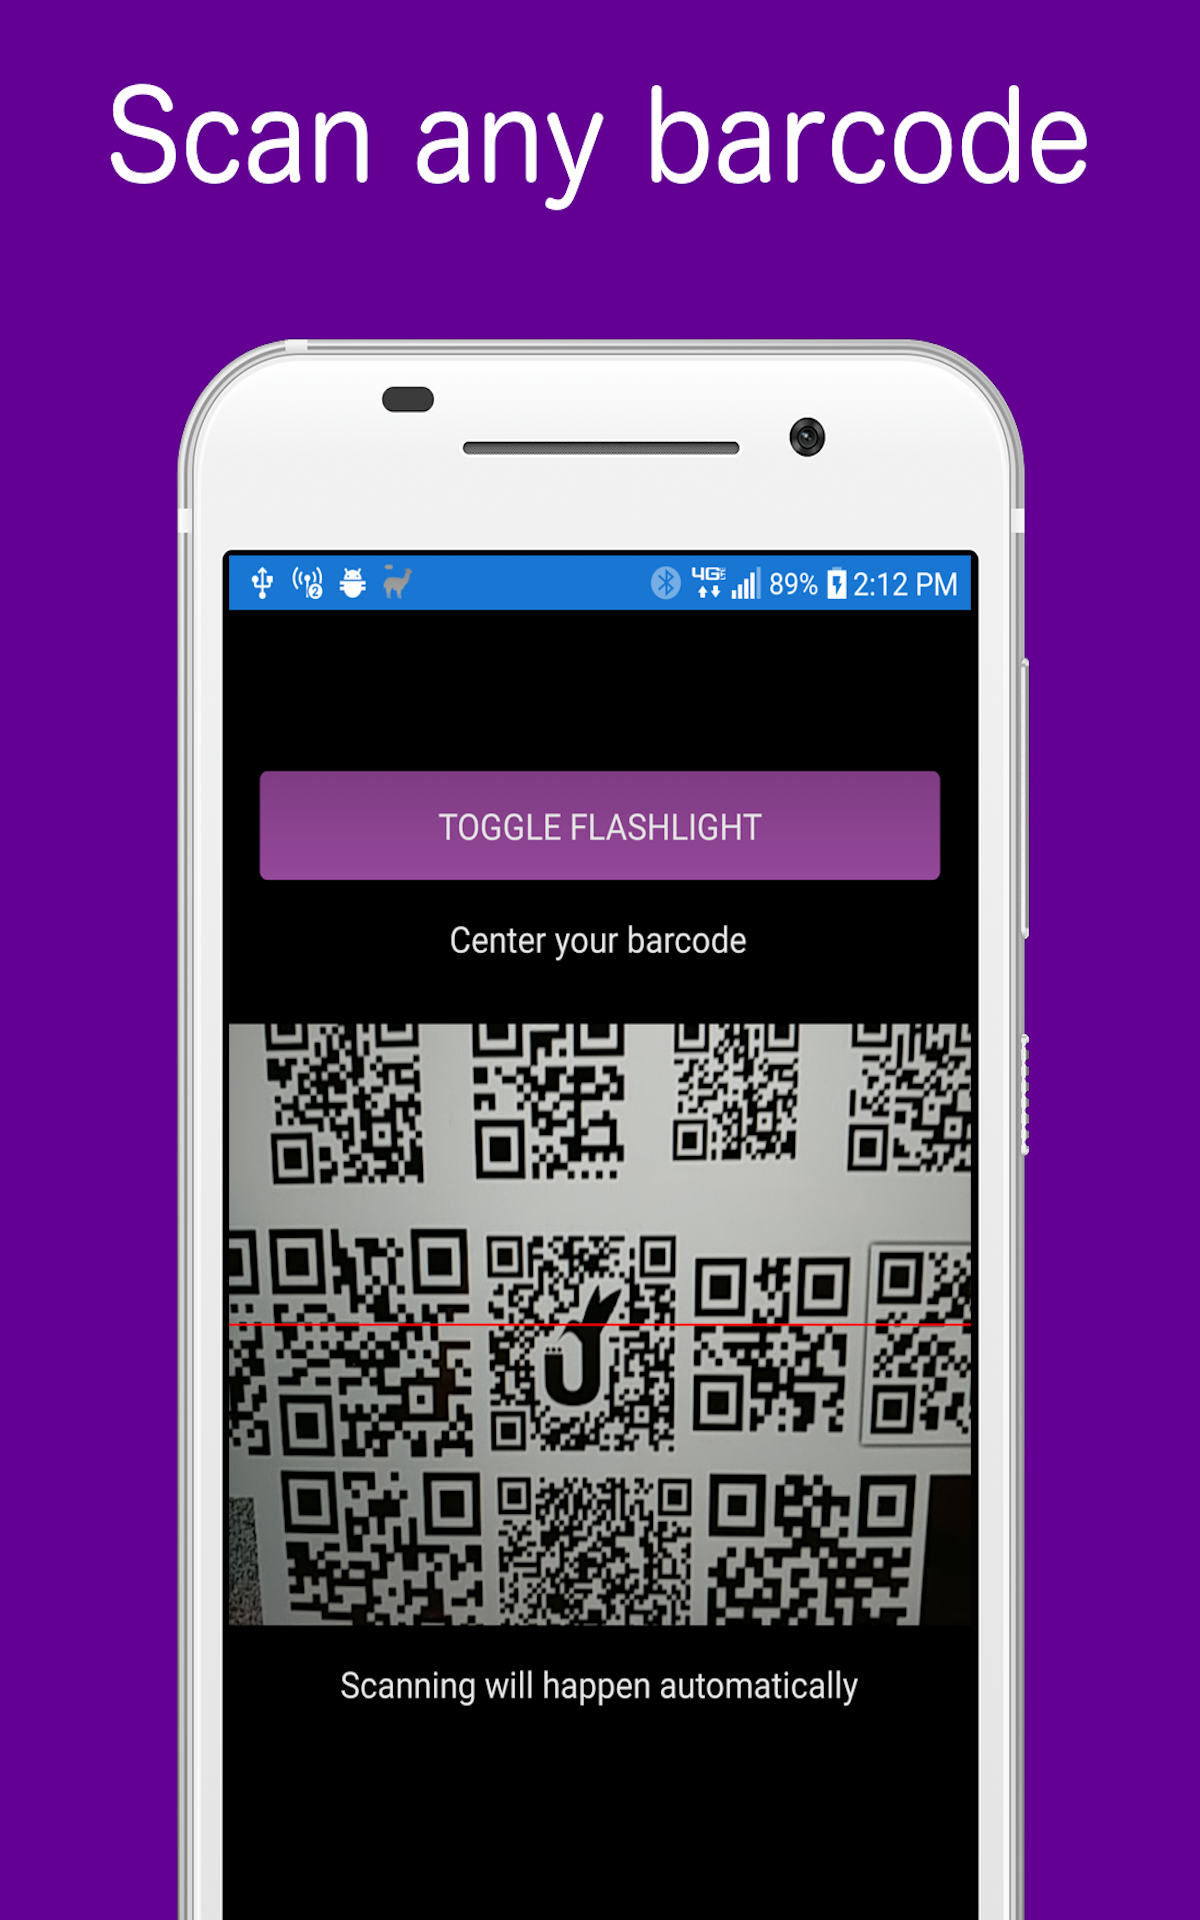 QR Code Scanner: Free QR Code and Barcode Reader - Import It All